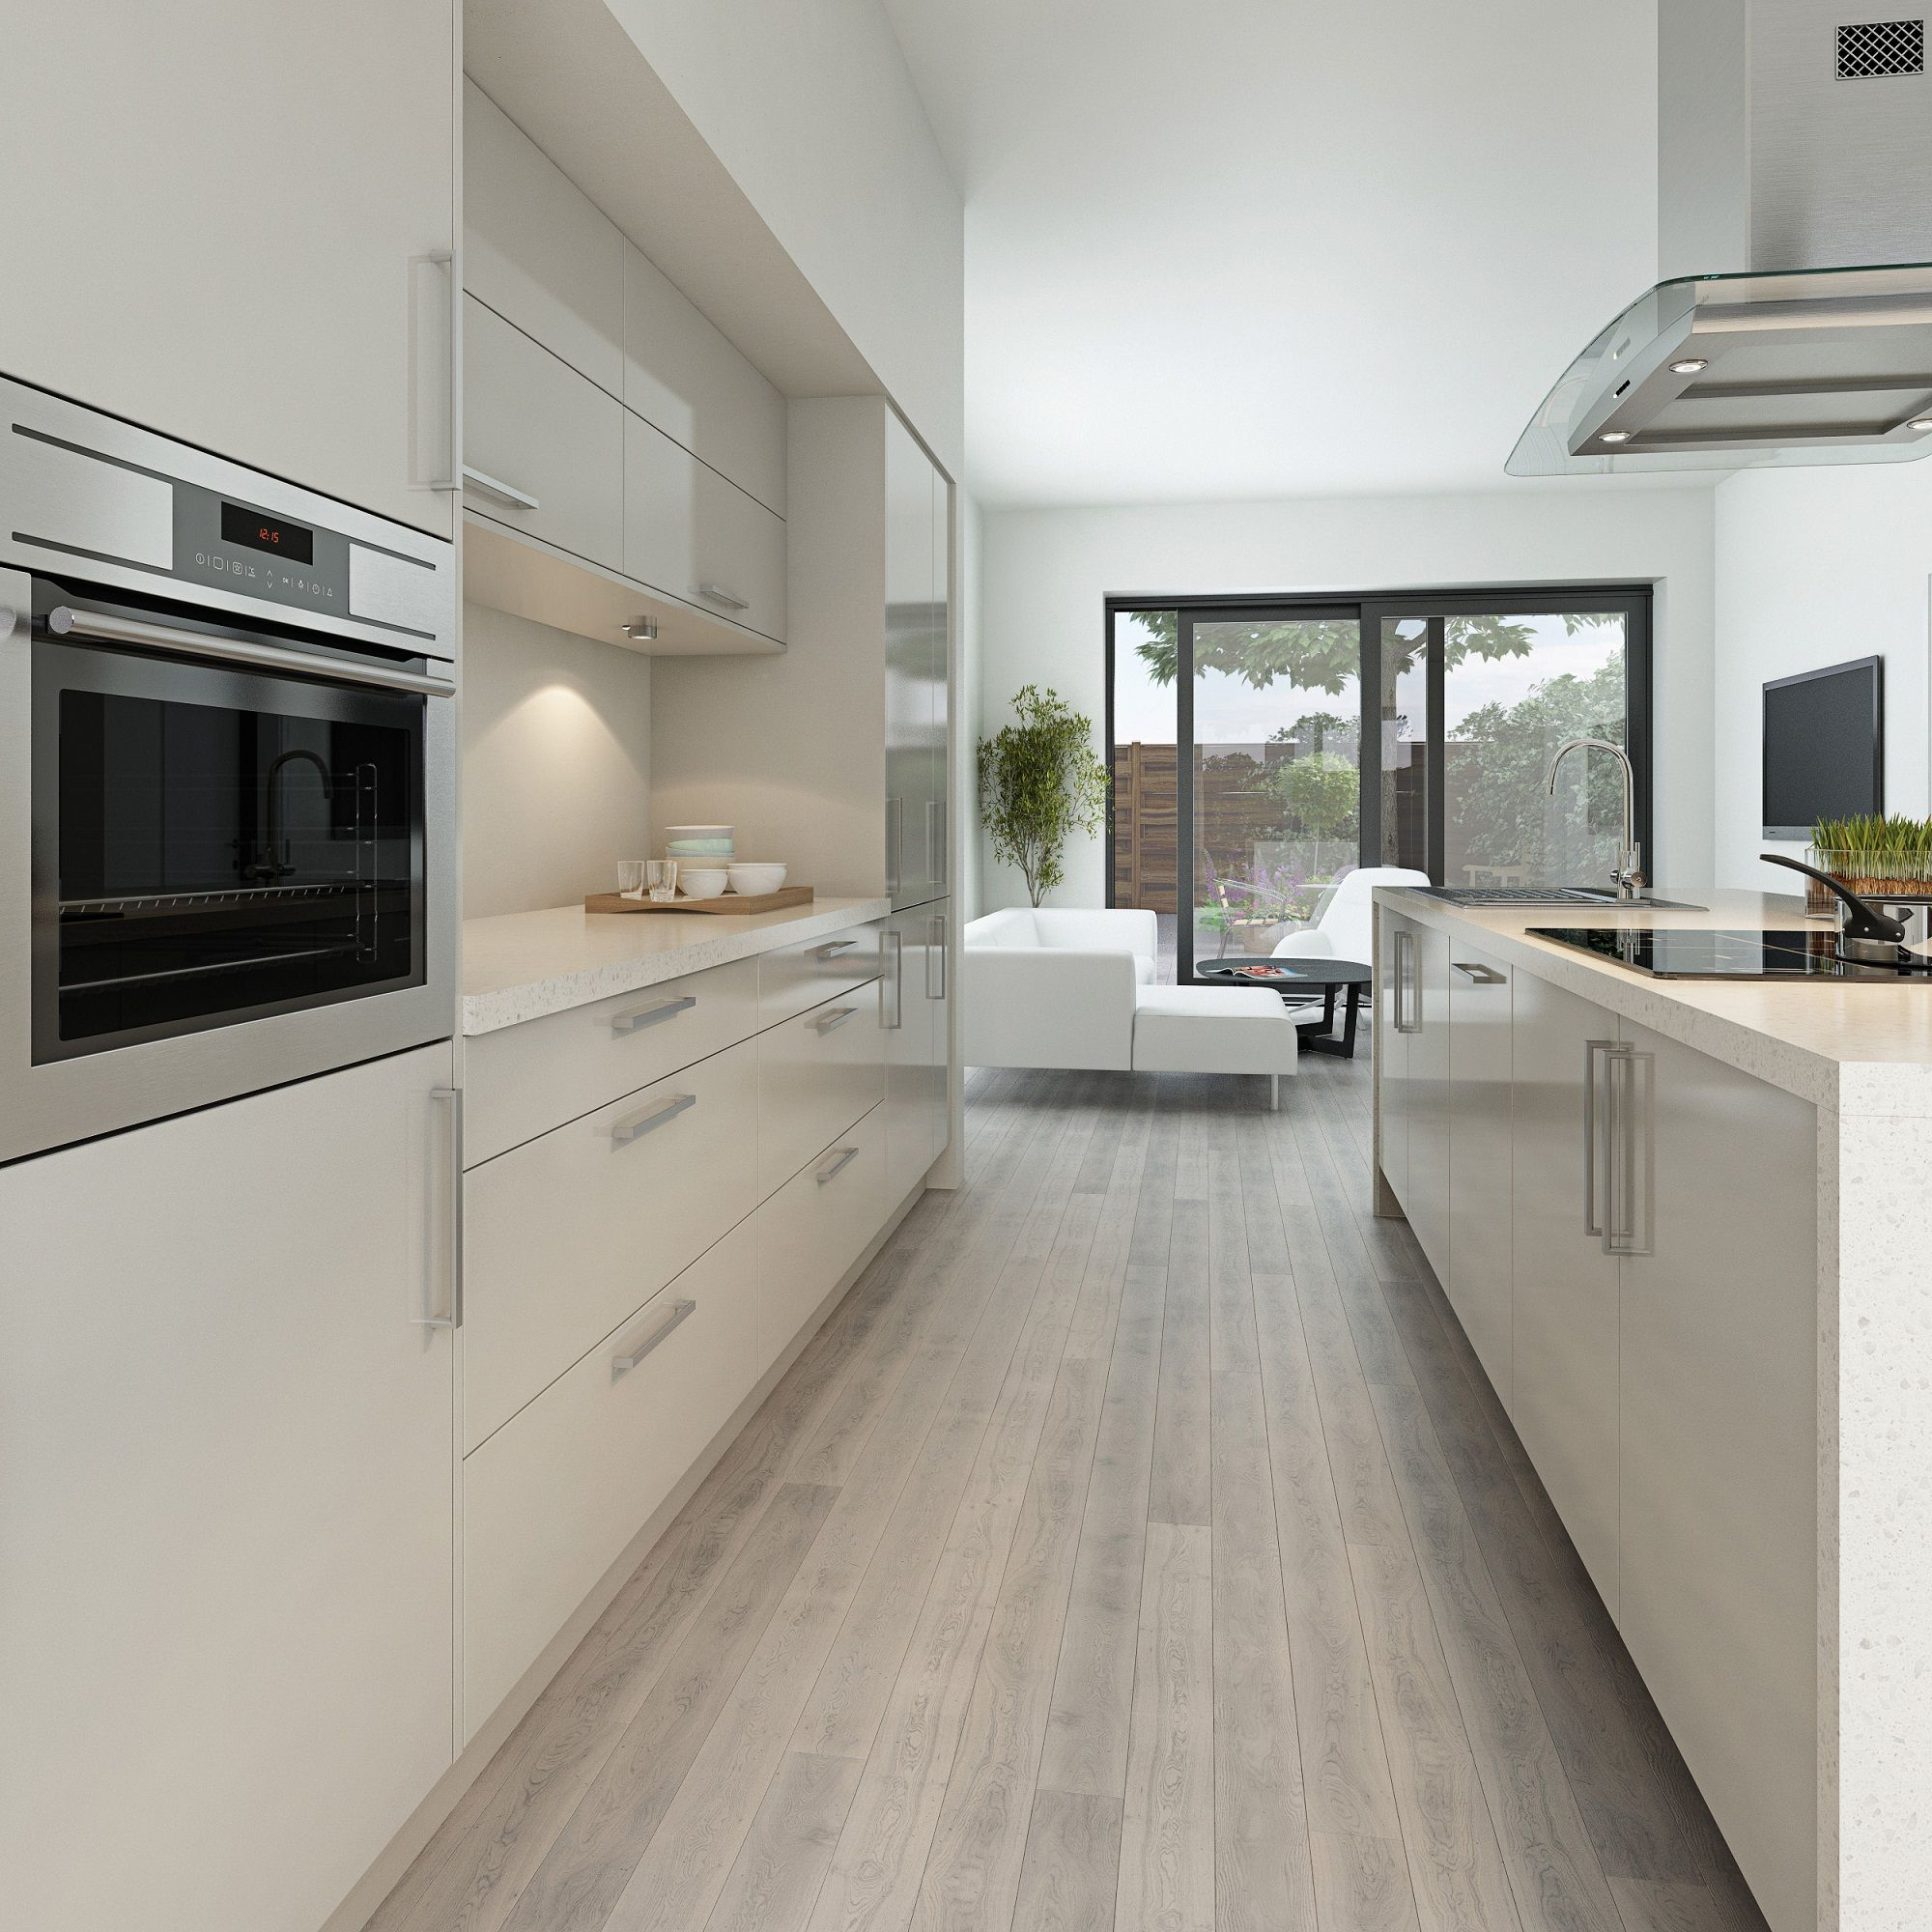 Best Kitchen Gallery: Maida Gloss Light Grey Is One Of Our Definitive Modern Kitchens And of Modern Gloss Kitchen Cabinets on rachelxblog.com